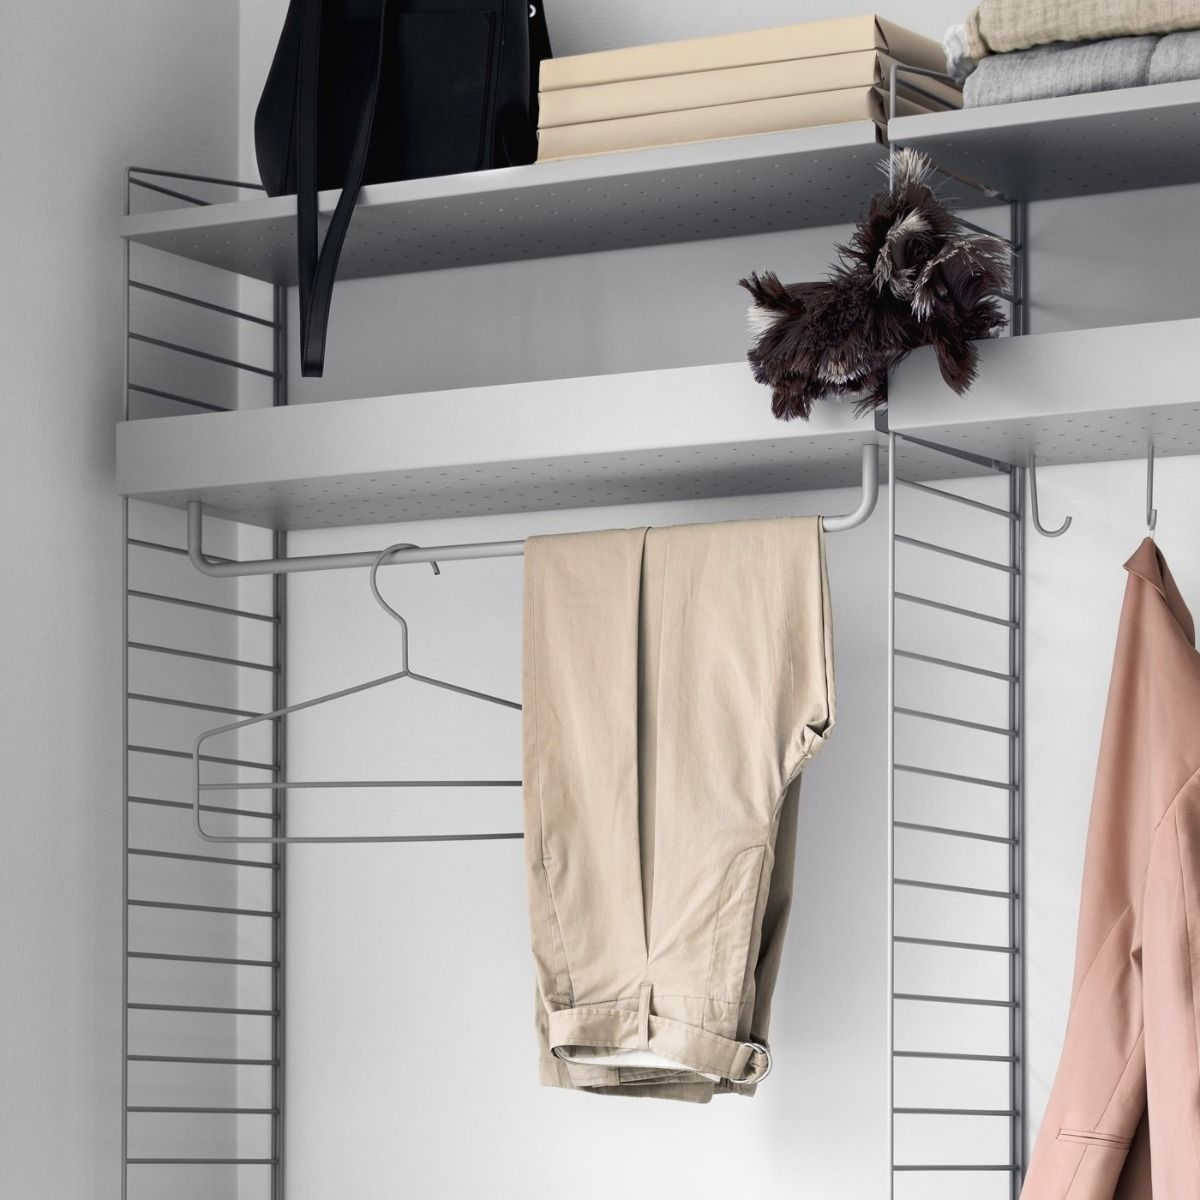 String metal shelves 78 x 30 in closet system